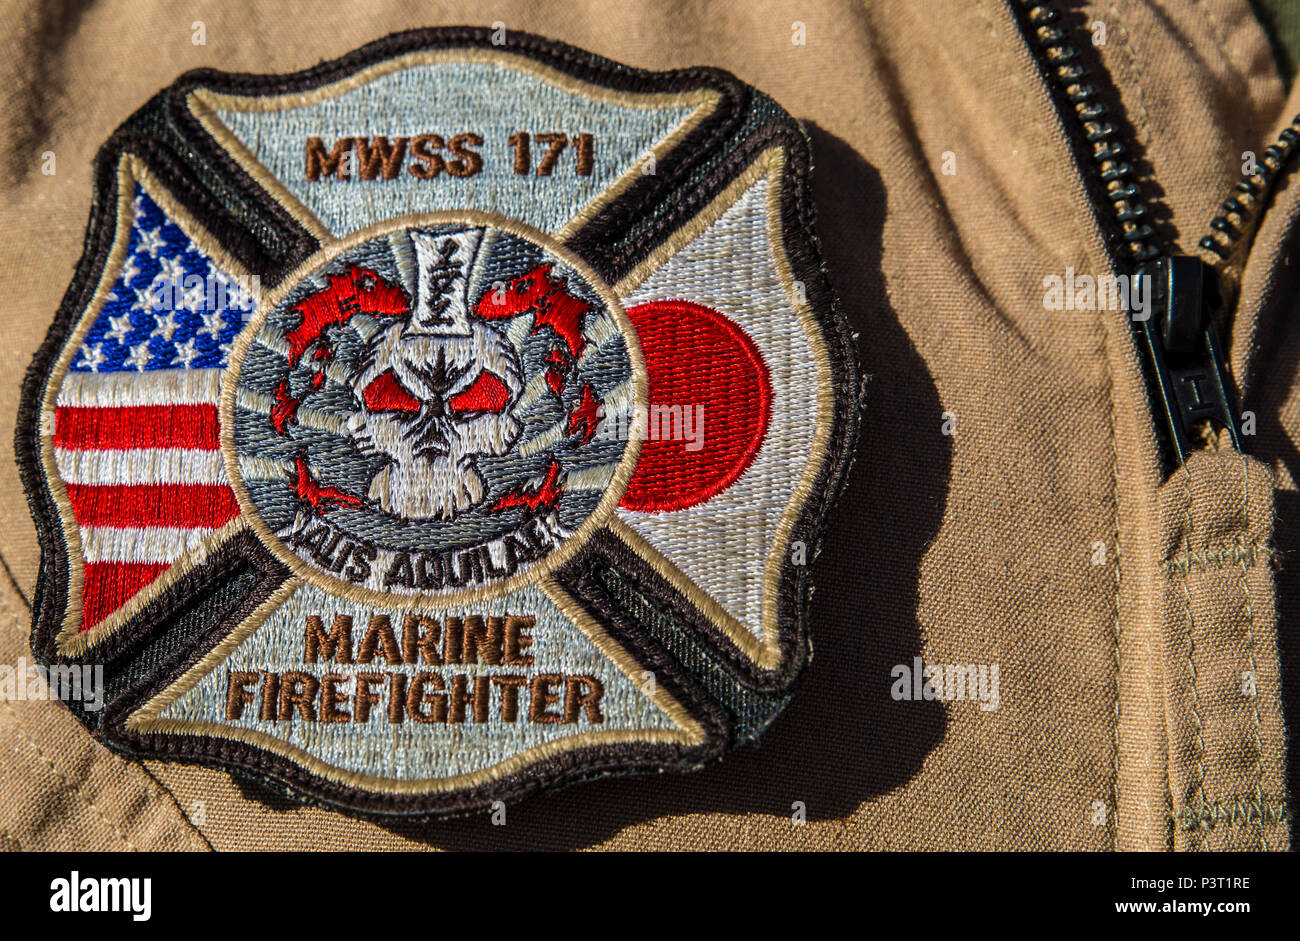 U.S. Marine Corps Cpl. Michael Barton, an aircraft rescue firefighter specialist with Marine Wing Support Squadron (MWSS) 171, sports an MWSS-171 Marine Firefighter patch during Exercise Pitch Black 2016 at Royal Australian Air Force Base Tindal, Australia, July 28, 2016. Barton is a liaison between Marine Fighter Attack Squadron (VMFA) 122 and No. 17 Squadron Fire and Rescue team stationed at RAAF Tindal, in case of emergencies with the flying squadron's aircraft during the exercise. Pitch Black is a multination exercise that also includes participation from Canada, France, Italy, Germany, In - Stock Image